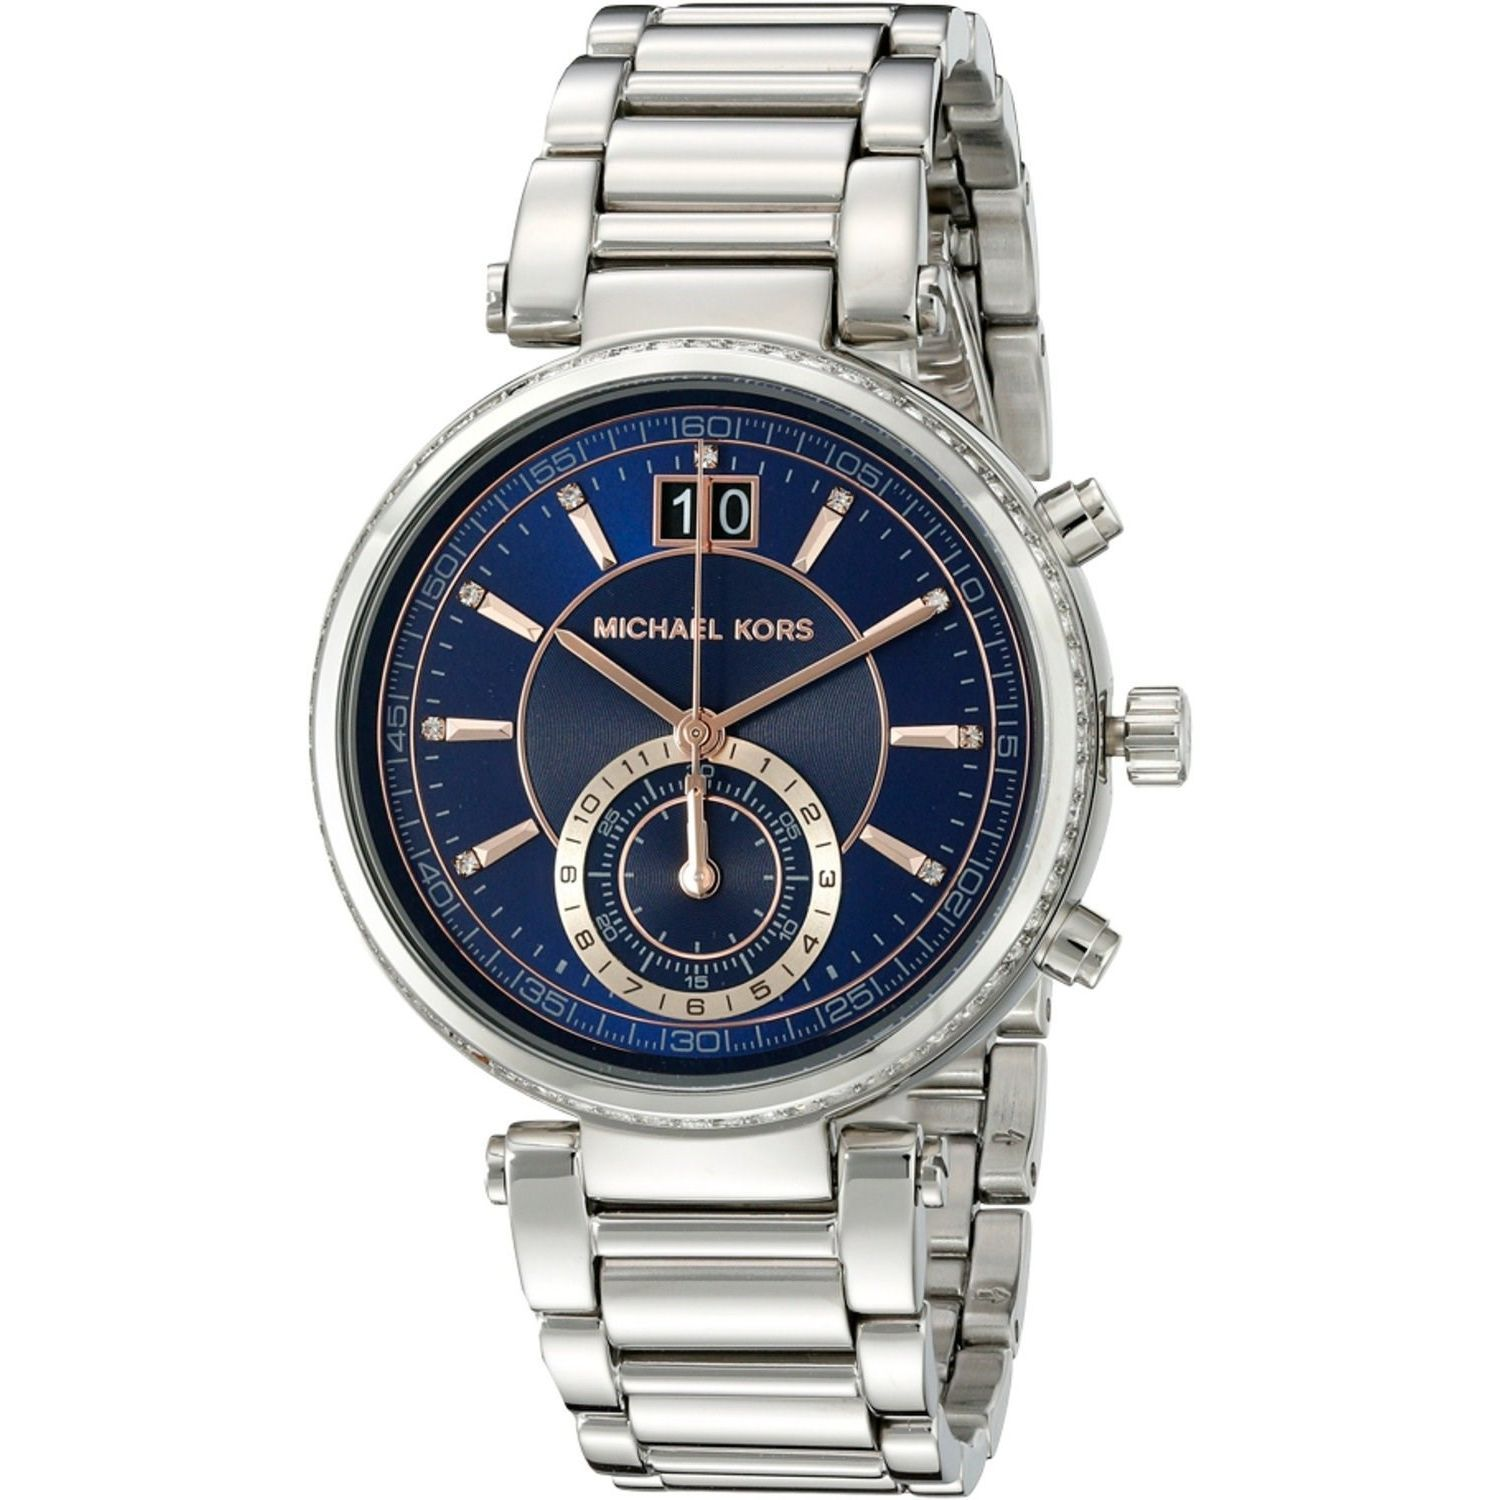 b5c6115ad6ba Shop Michael Kors Women s  Sawyer  Chronograph Crystal Stainless Steel Watch  - Free Shipping Today - Overstock - 10549408